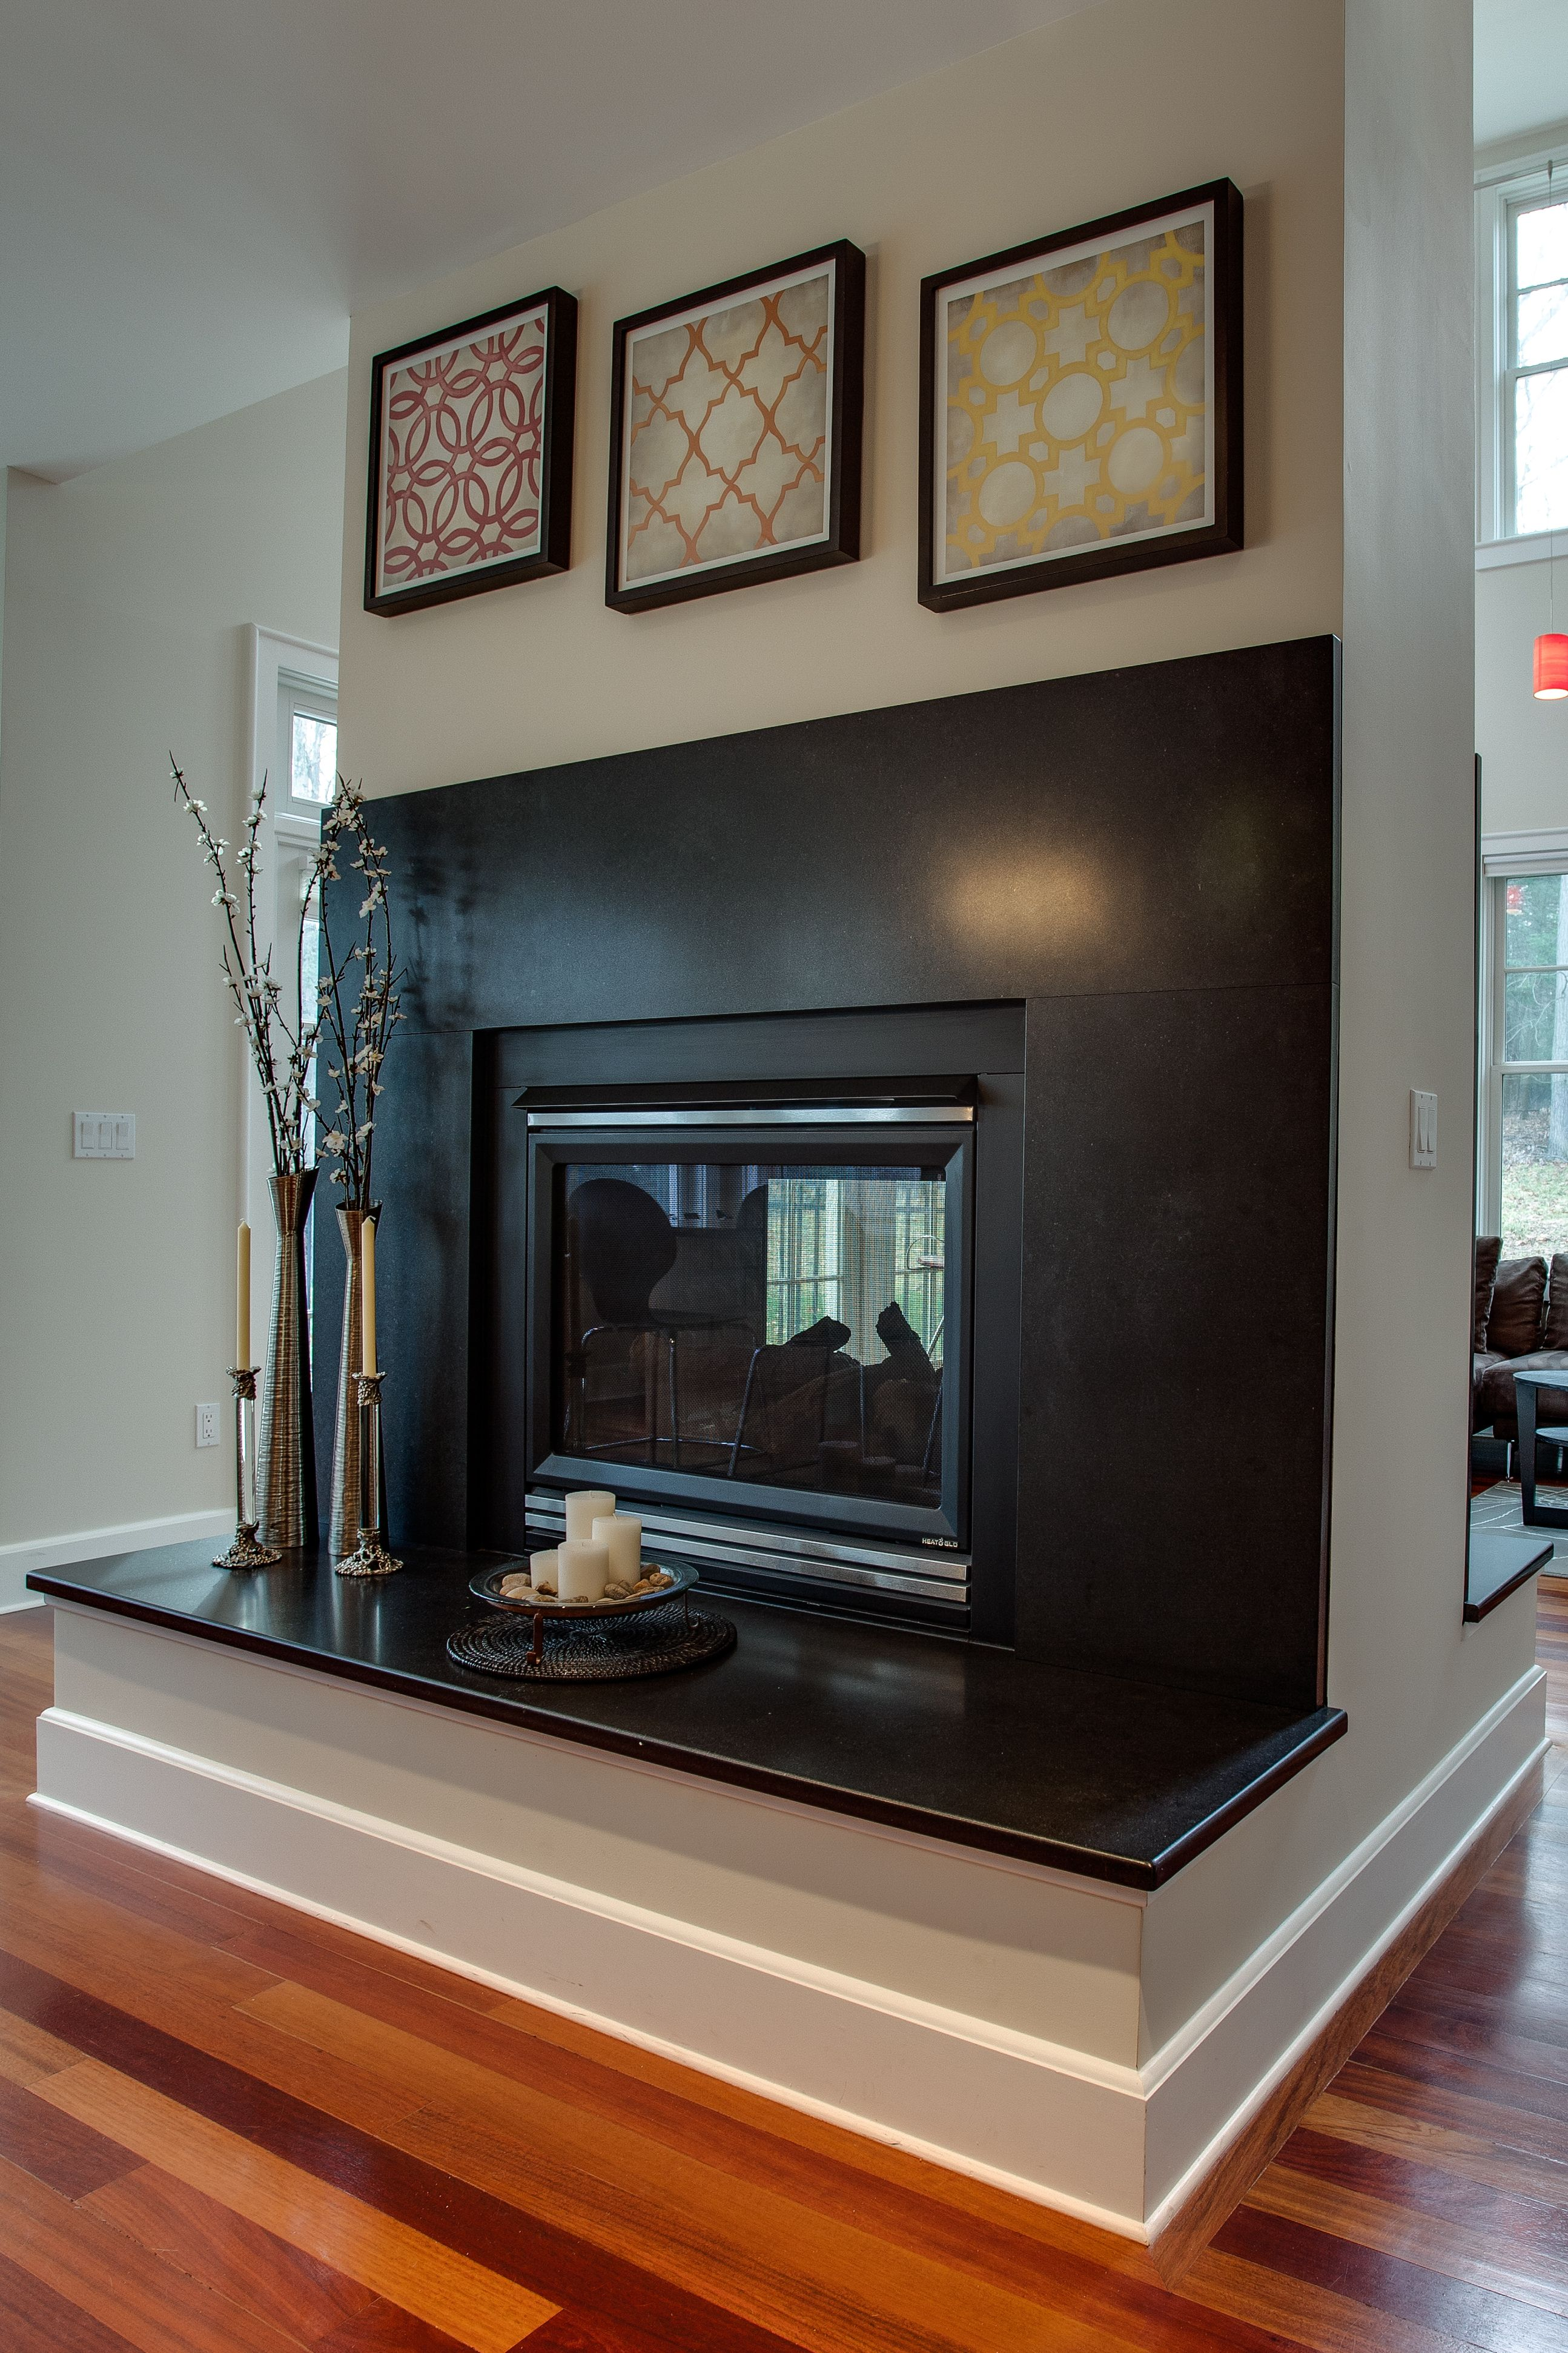 This is a gas Fireplace that serves the Kitchen / Breakfast Area as Kitchen Ideas Pinterest Fireplace on pinterest crib ideas, pinterest hammock ideas, pinterest potting bench ideas, pinterest dvd ideas, pinterest lantern ideas, pinterest cozy bedroom ideas, pinterest back patio ideas, pinterest workshop ideas, pinterest coffee station ideas, pinterest restroom ideas, pinterest fire pit ideas, pinterest wainscoting ideas, pinterest diy project ideas, pinterest rustic decor ideas, pinterest decorating fireplaces, pinterest roofing ideas, pinterest cabinet ideas, pinterest living room ideas, pinterest floors ideas, pinterest home,